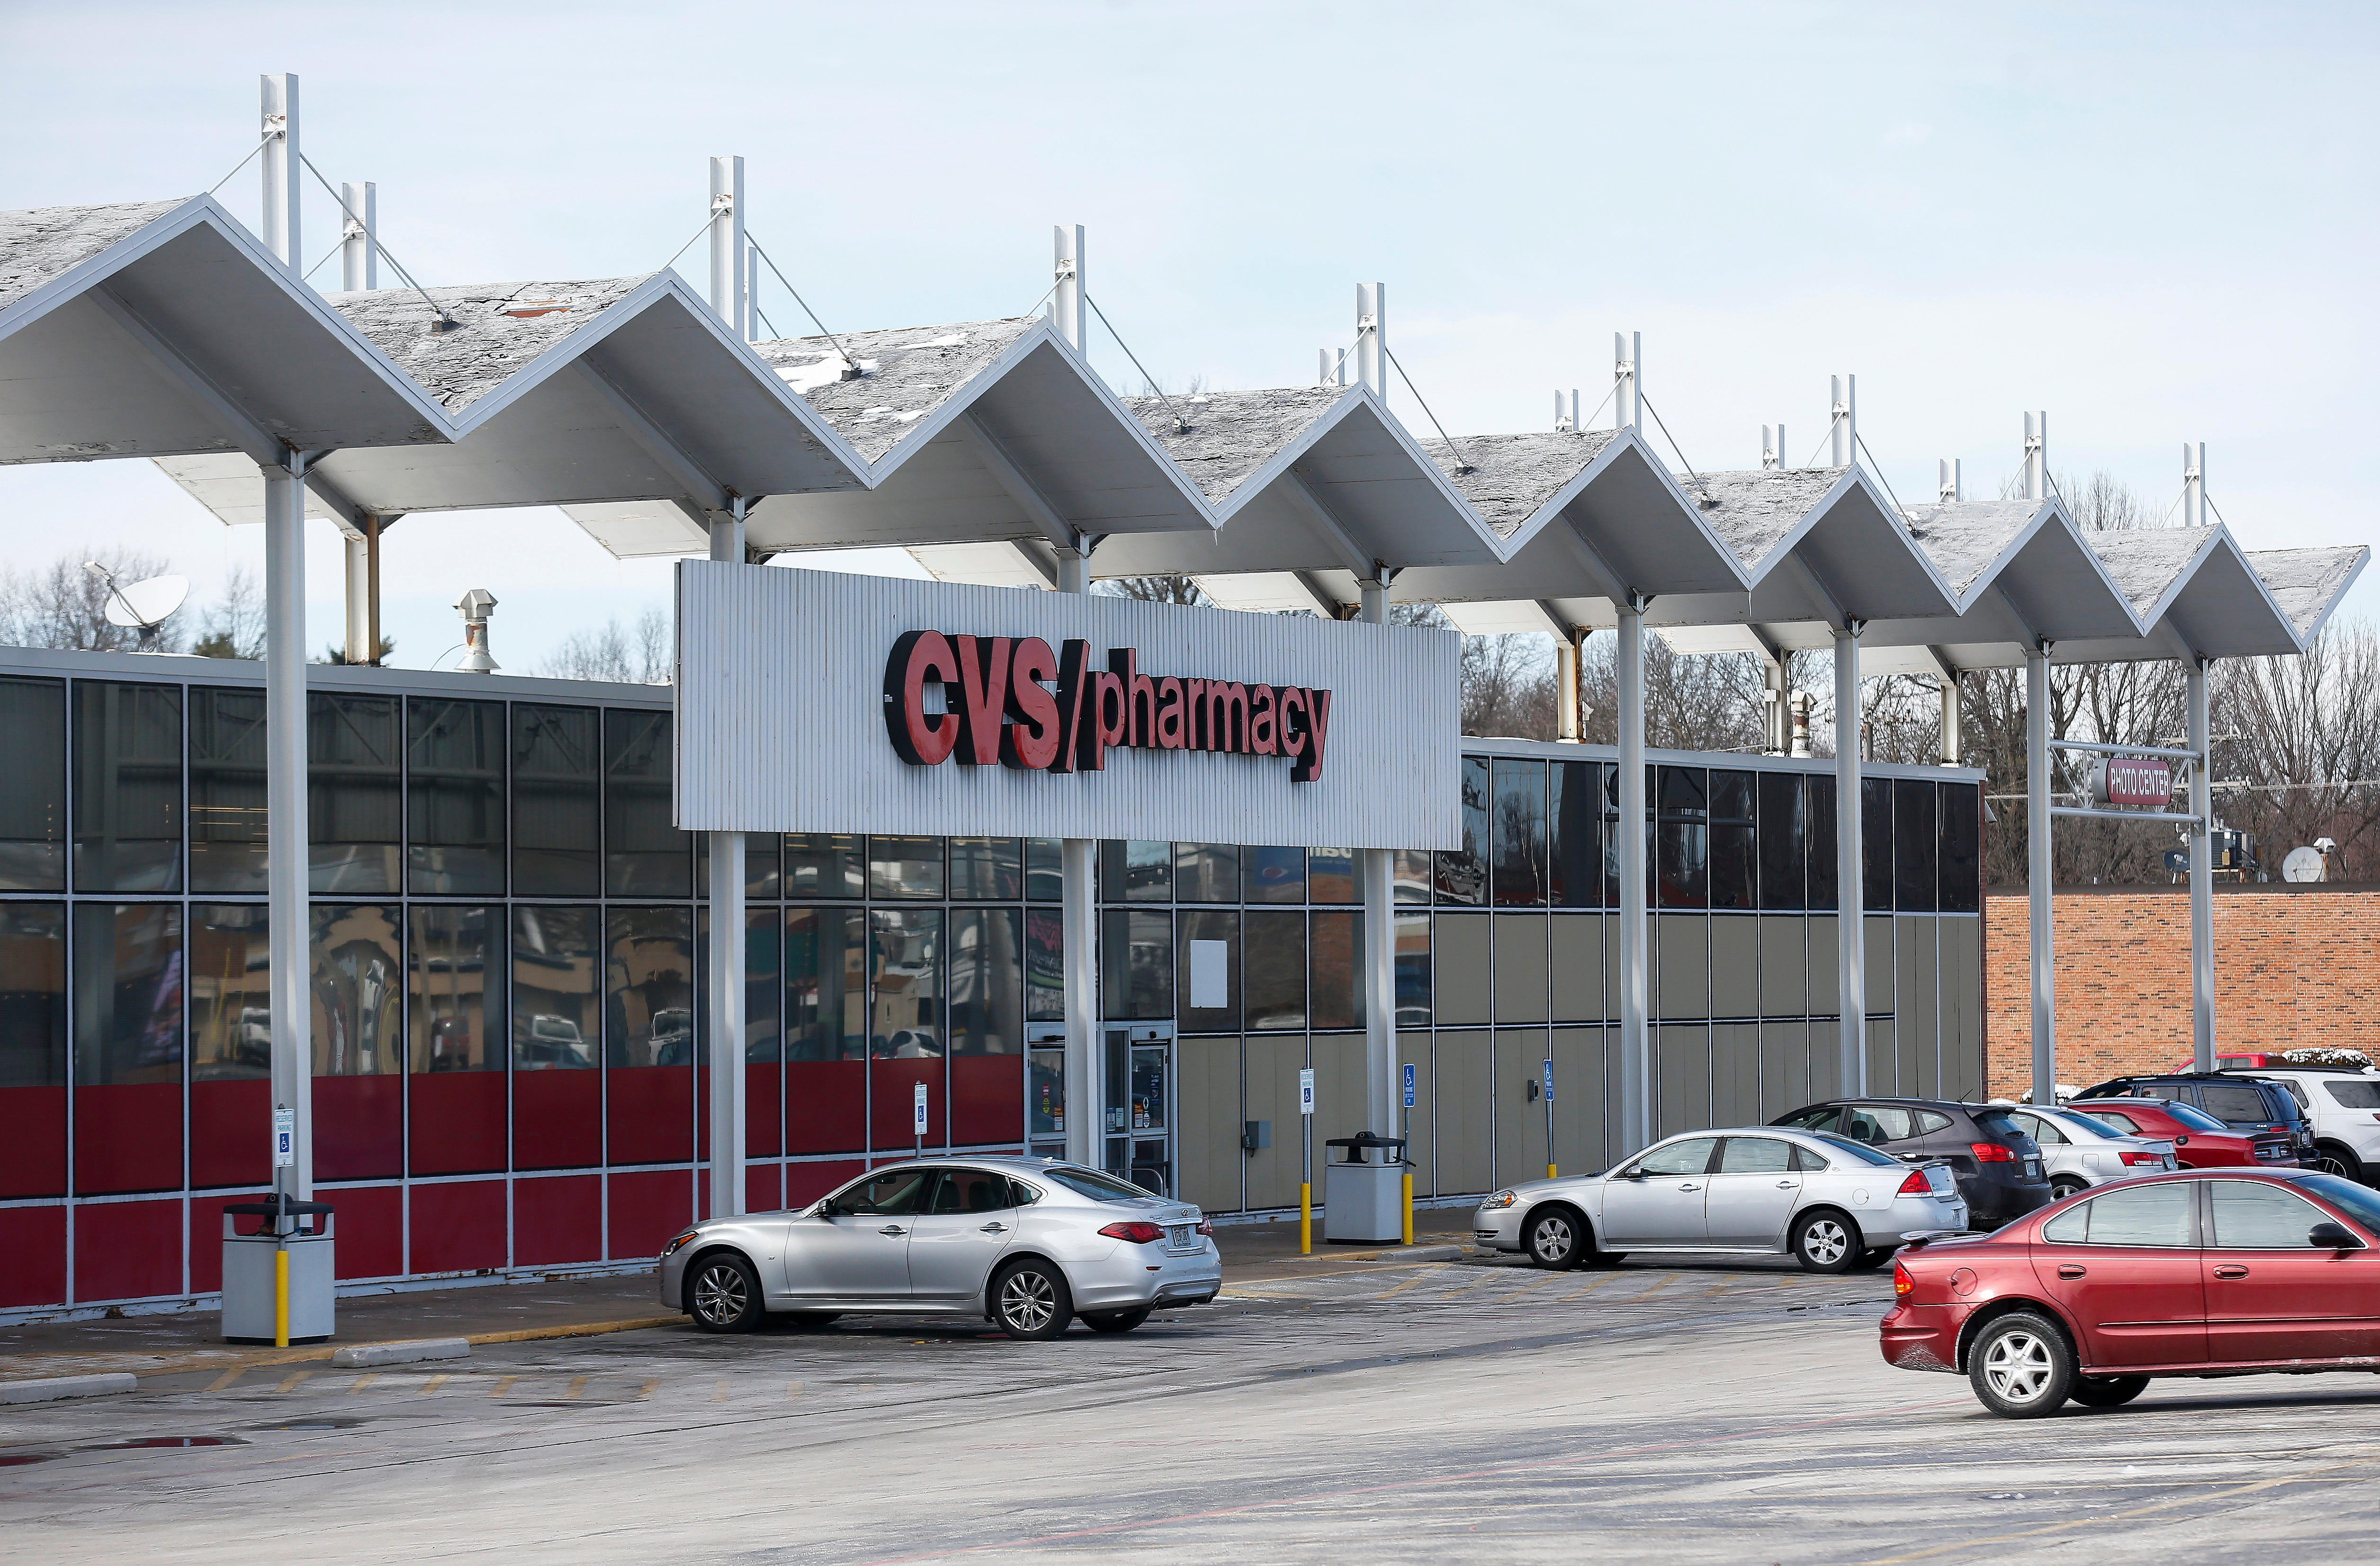 The CVS Pharmacy located at 1735 S. Glenstone Ave. will be closing next month.